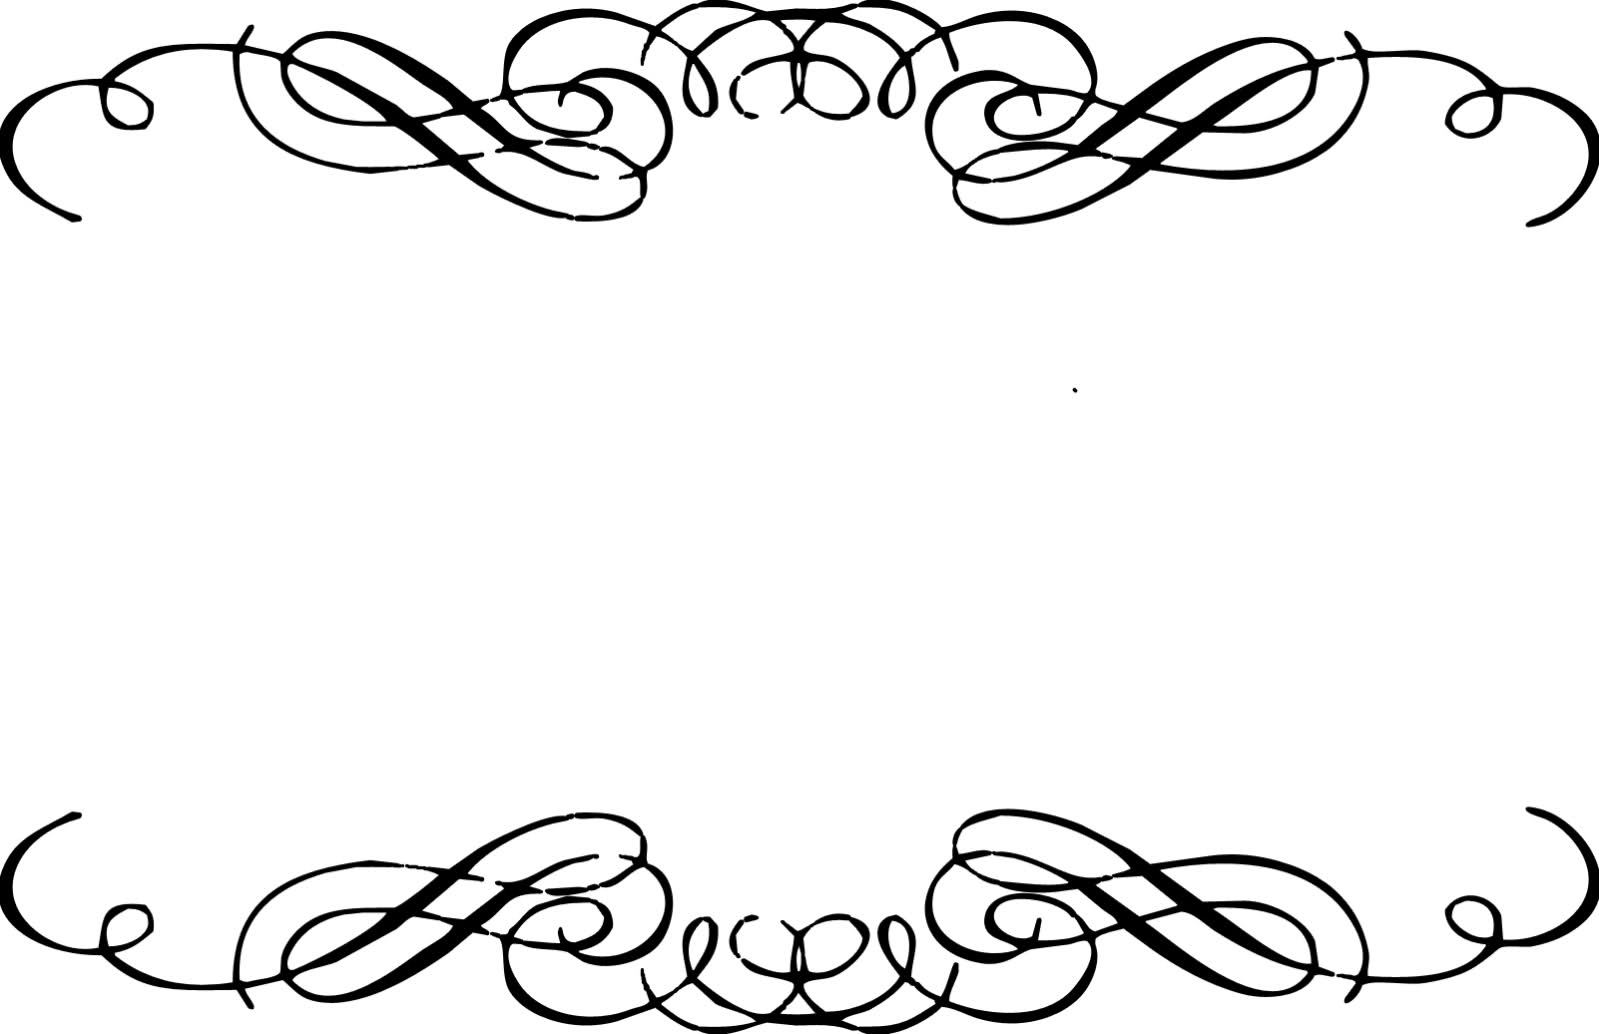 Free Elegant Lines Cliparts Download Free Clip Art Free Clip Art On Clipart Library